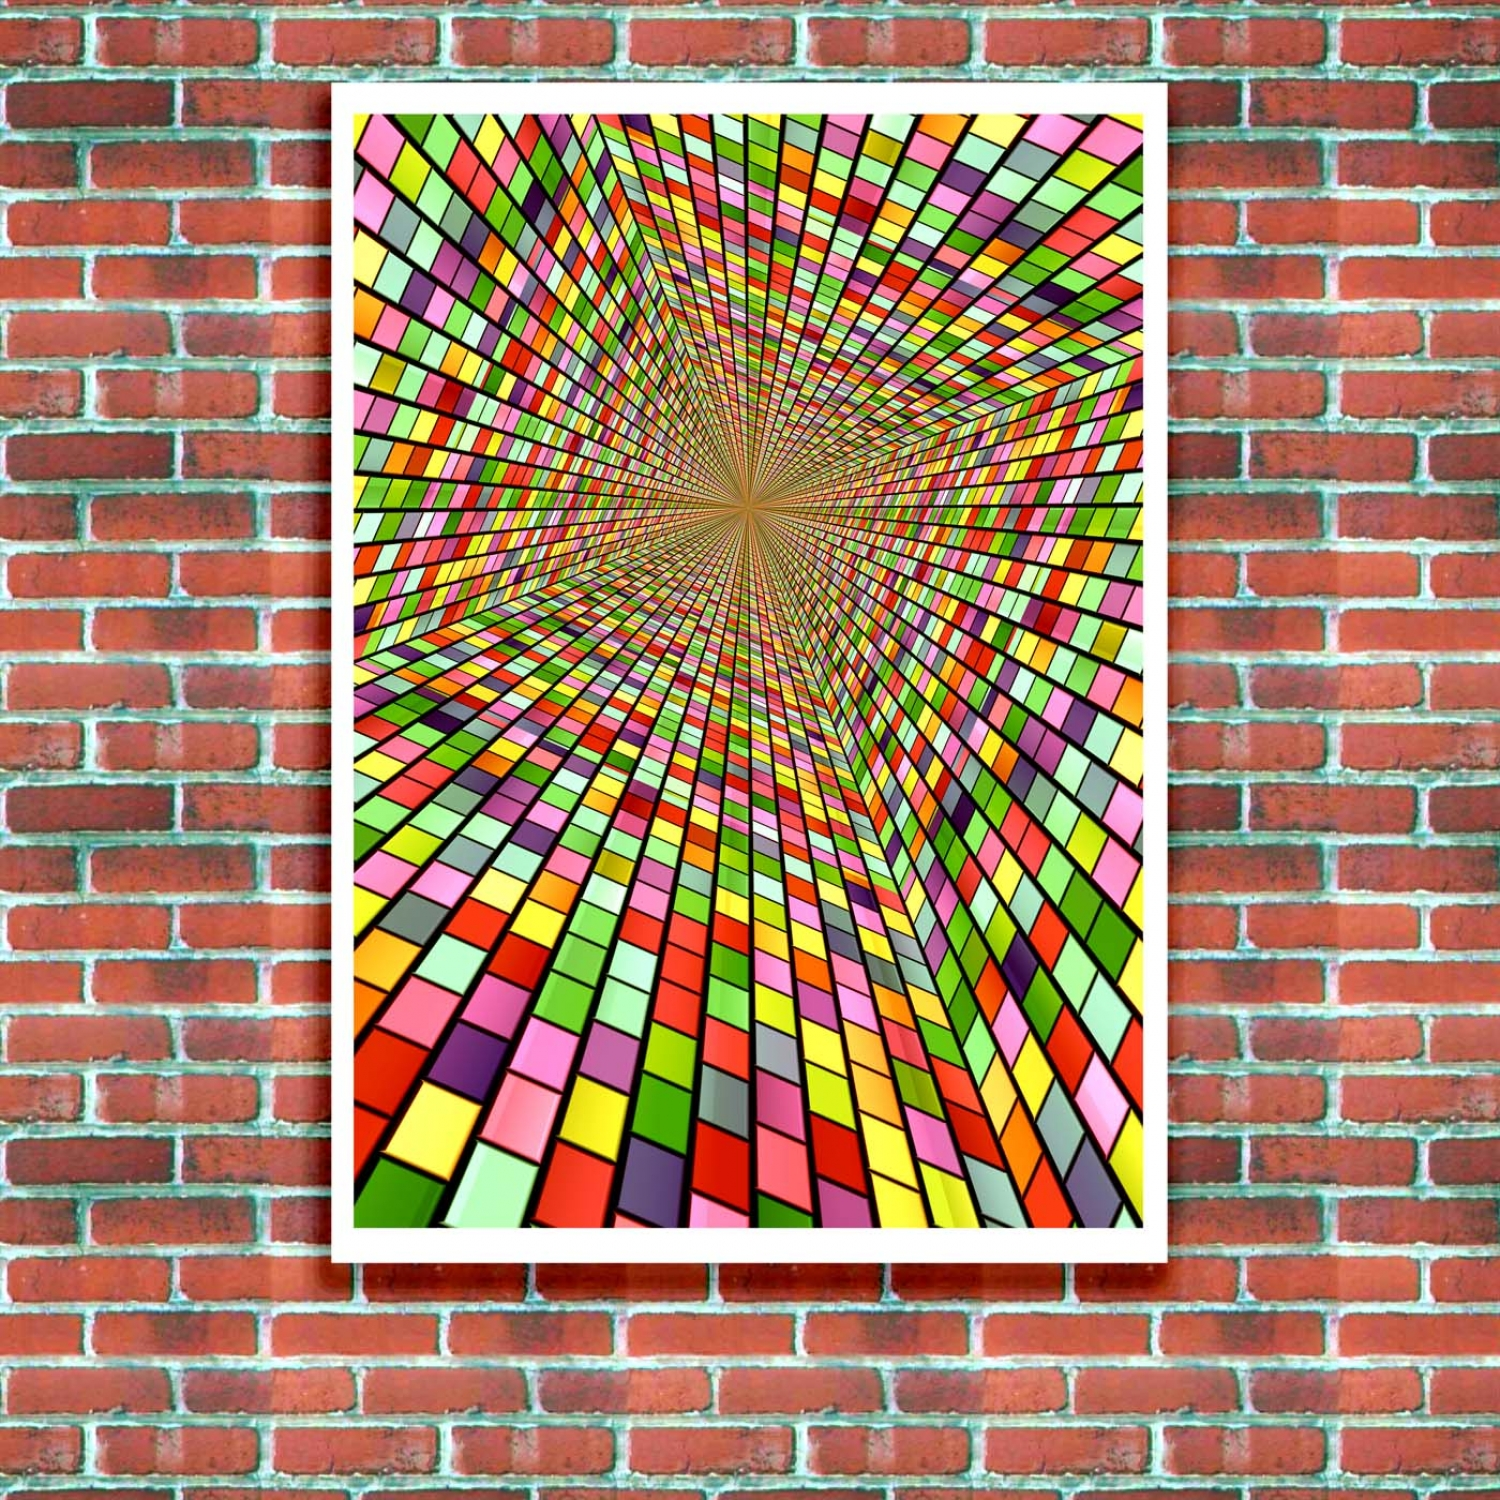 Abstract Art - Colour Shaft PosterAbstract Art - Colour Shaft Poster